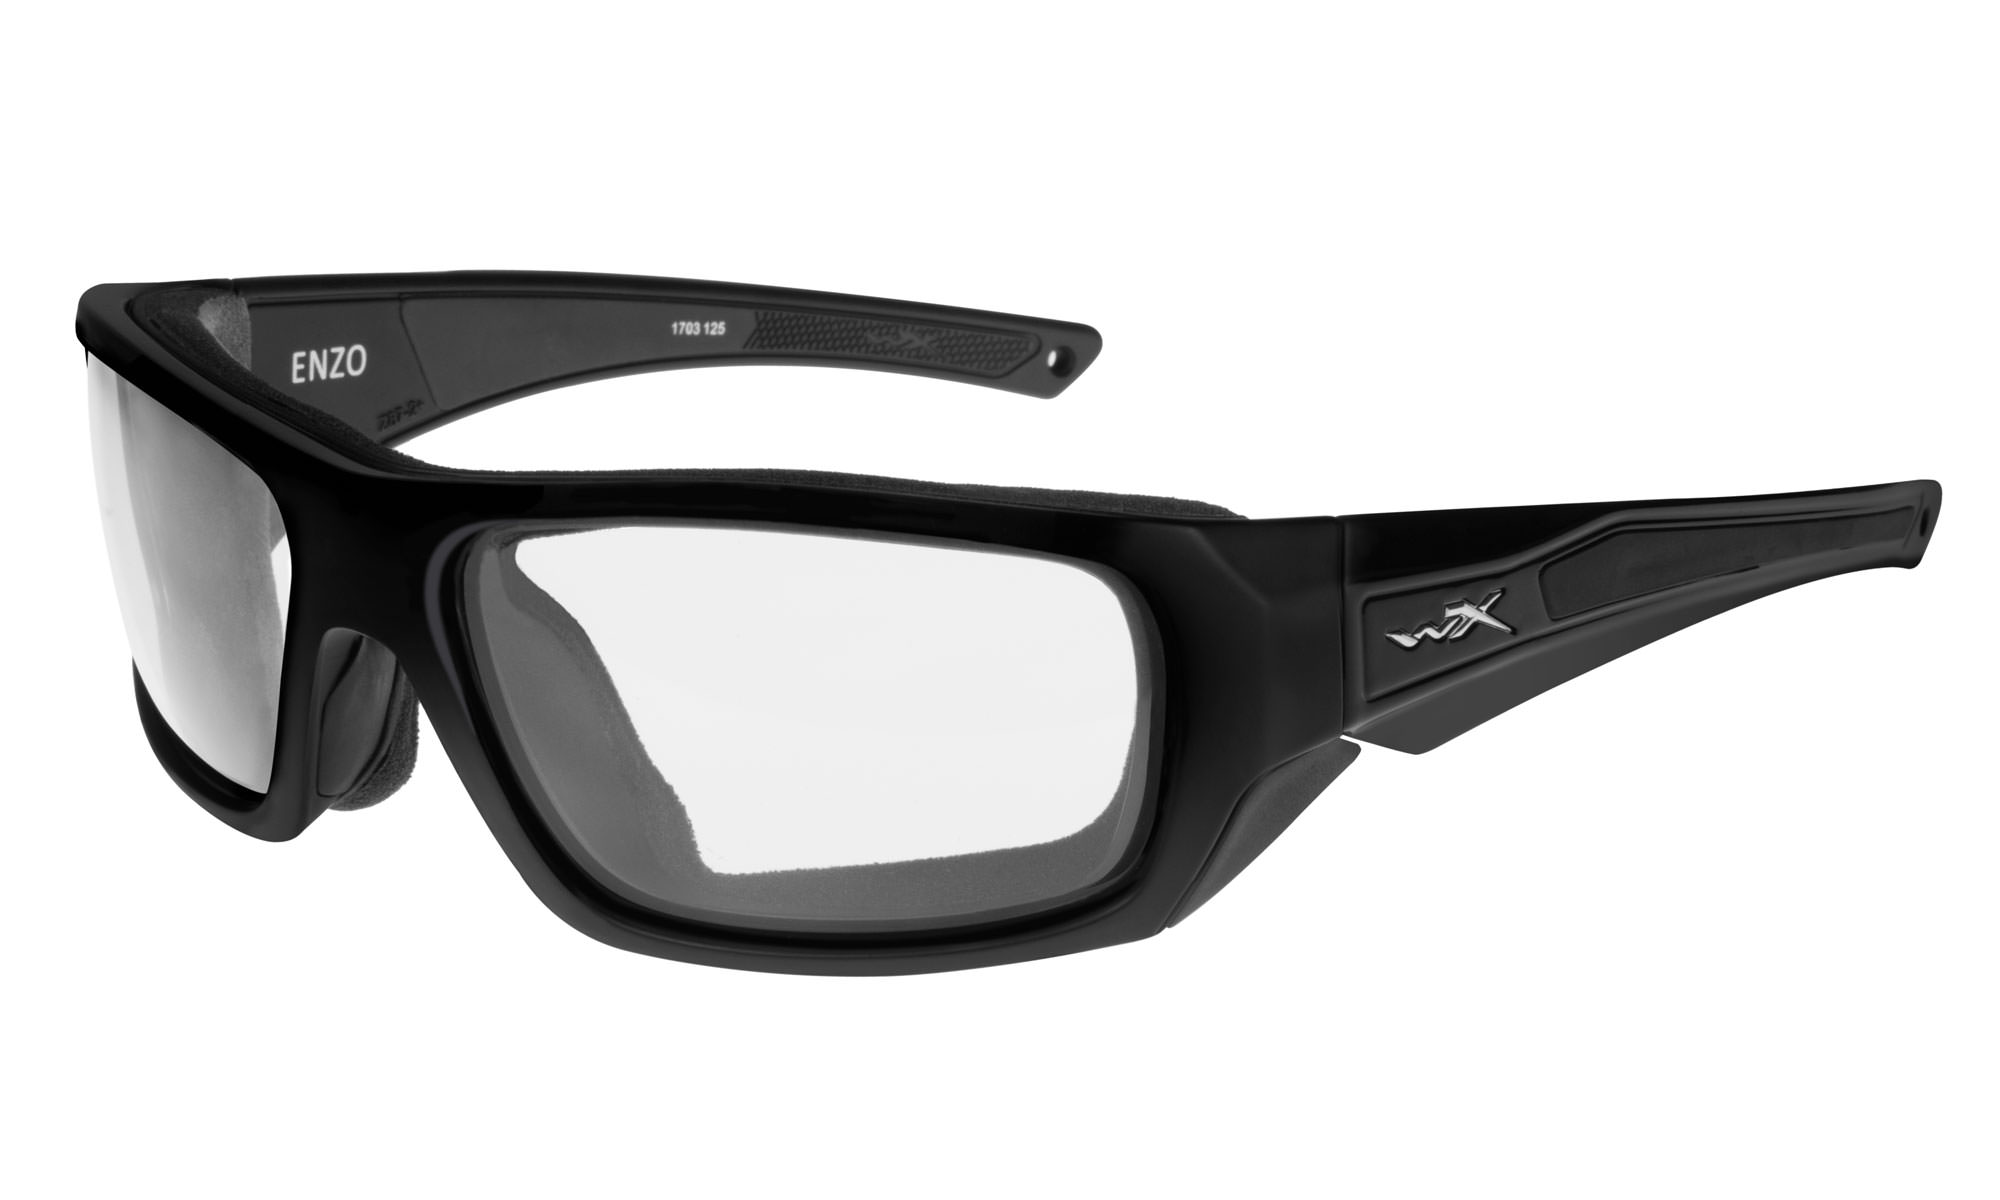 47859d84d3f0 Wiley-X WX Enzo Matte Black with Clear Lenses | Wiley X